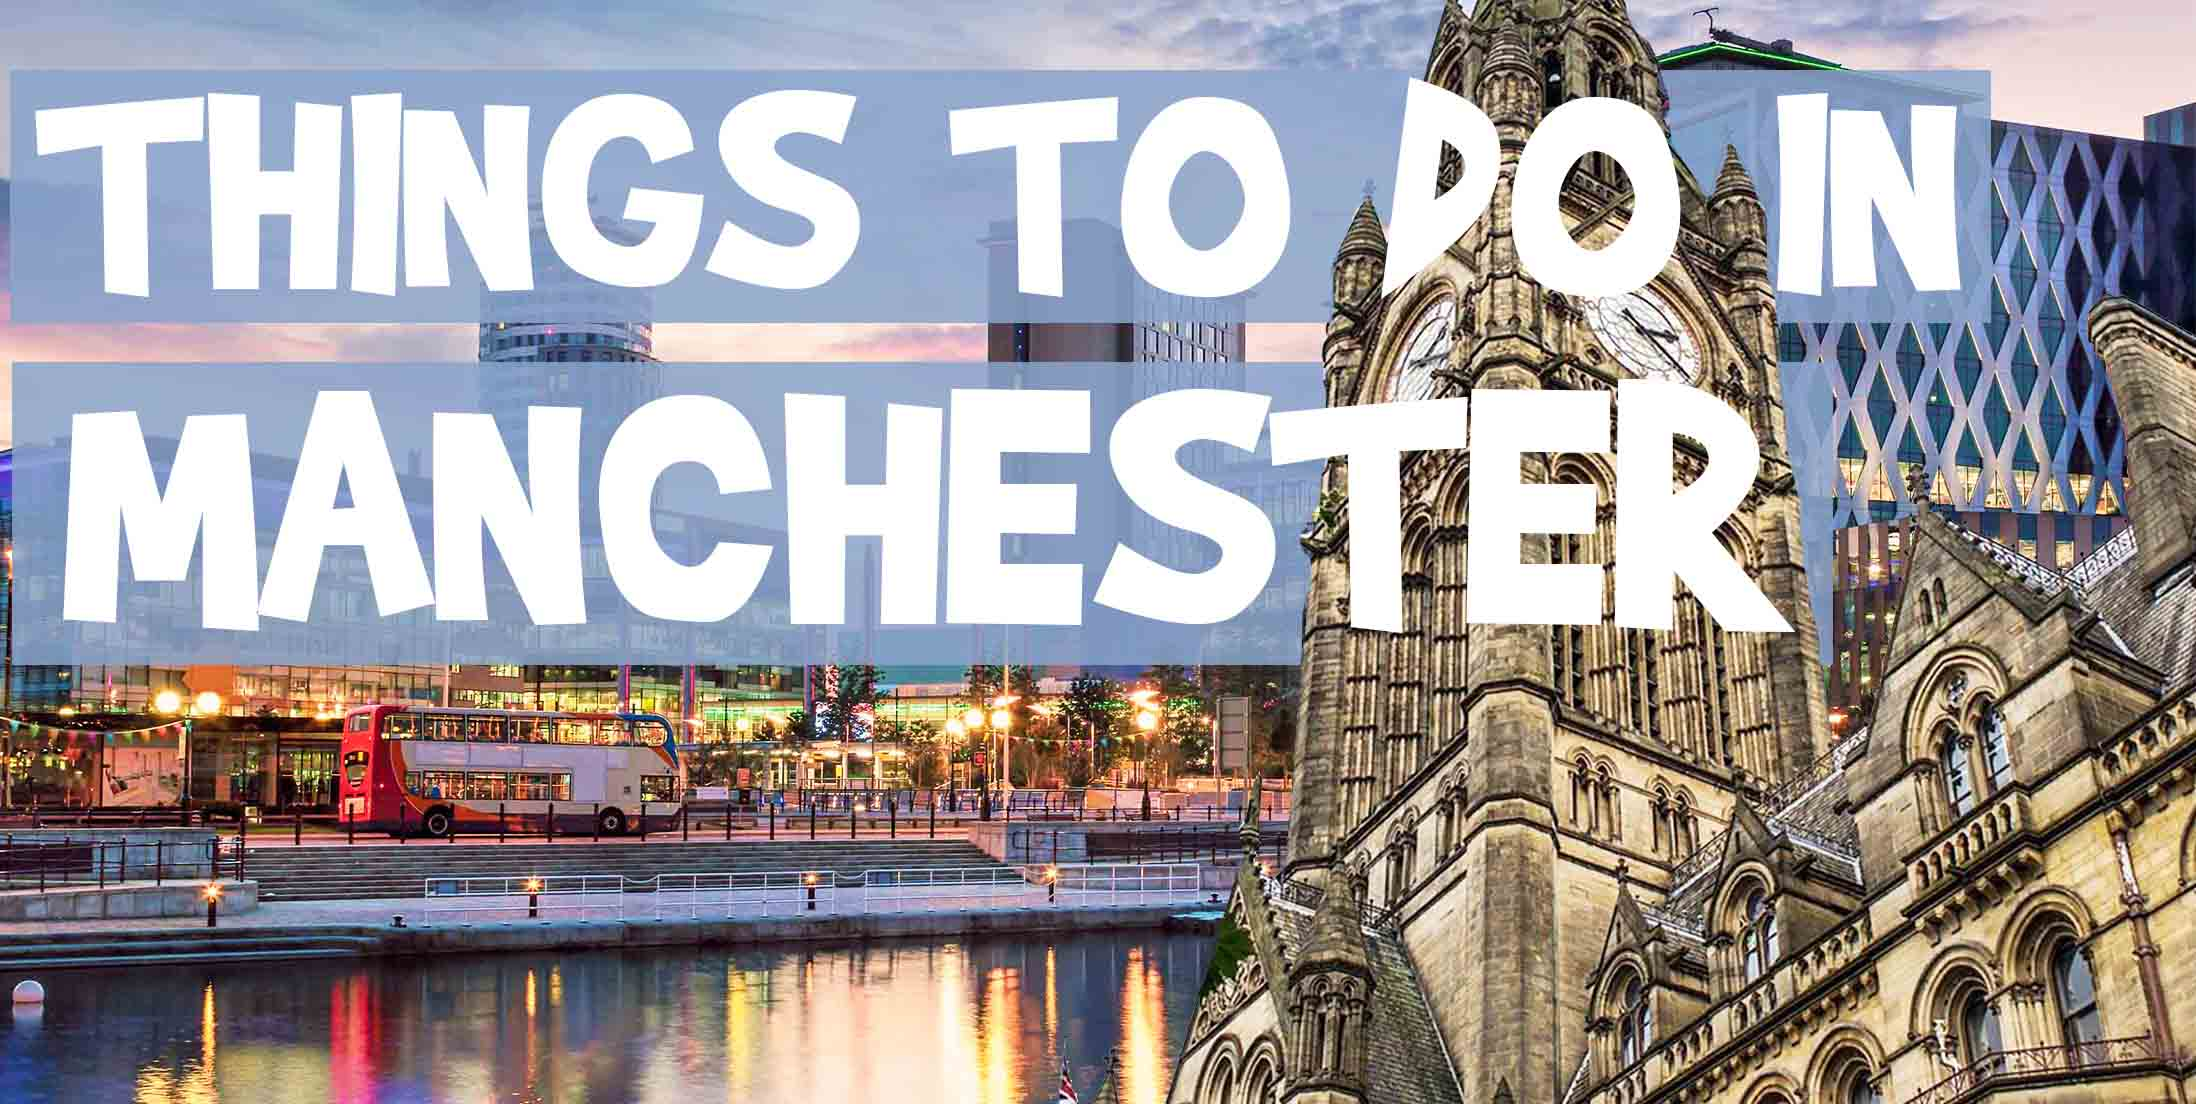 Things to Do in Manchester